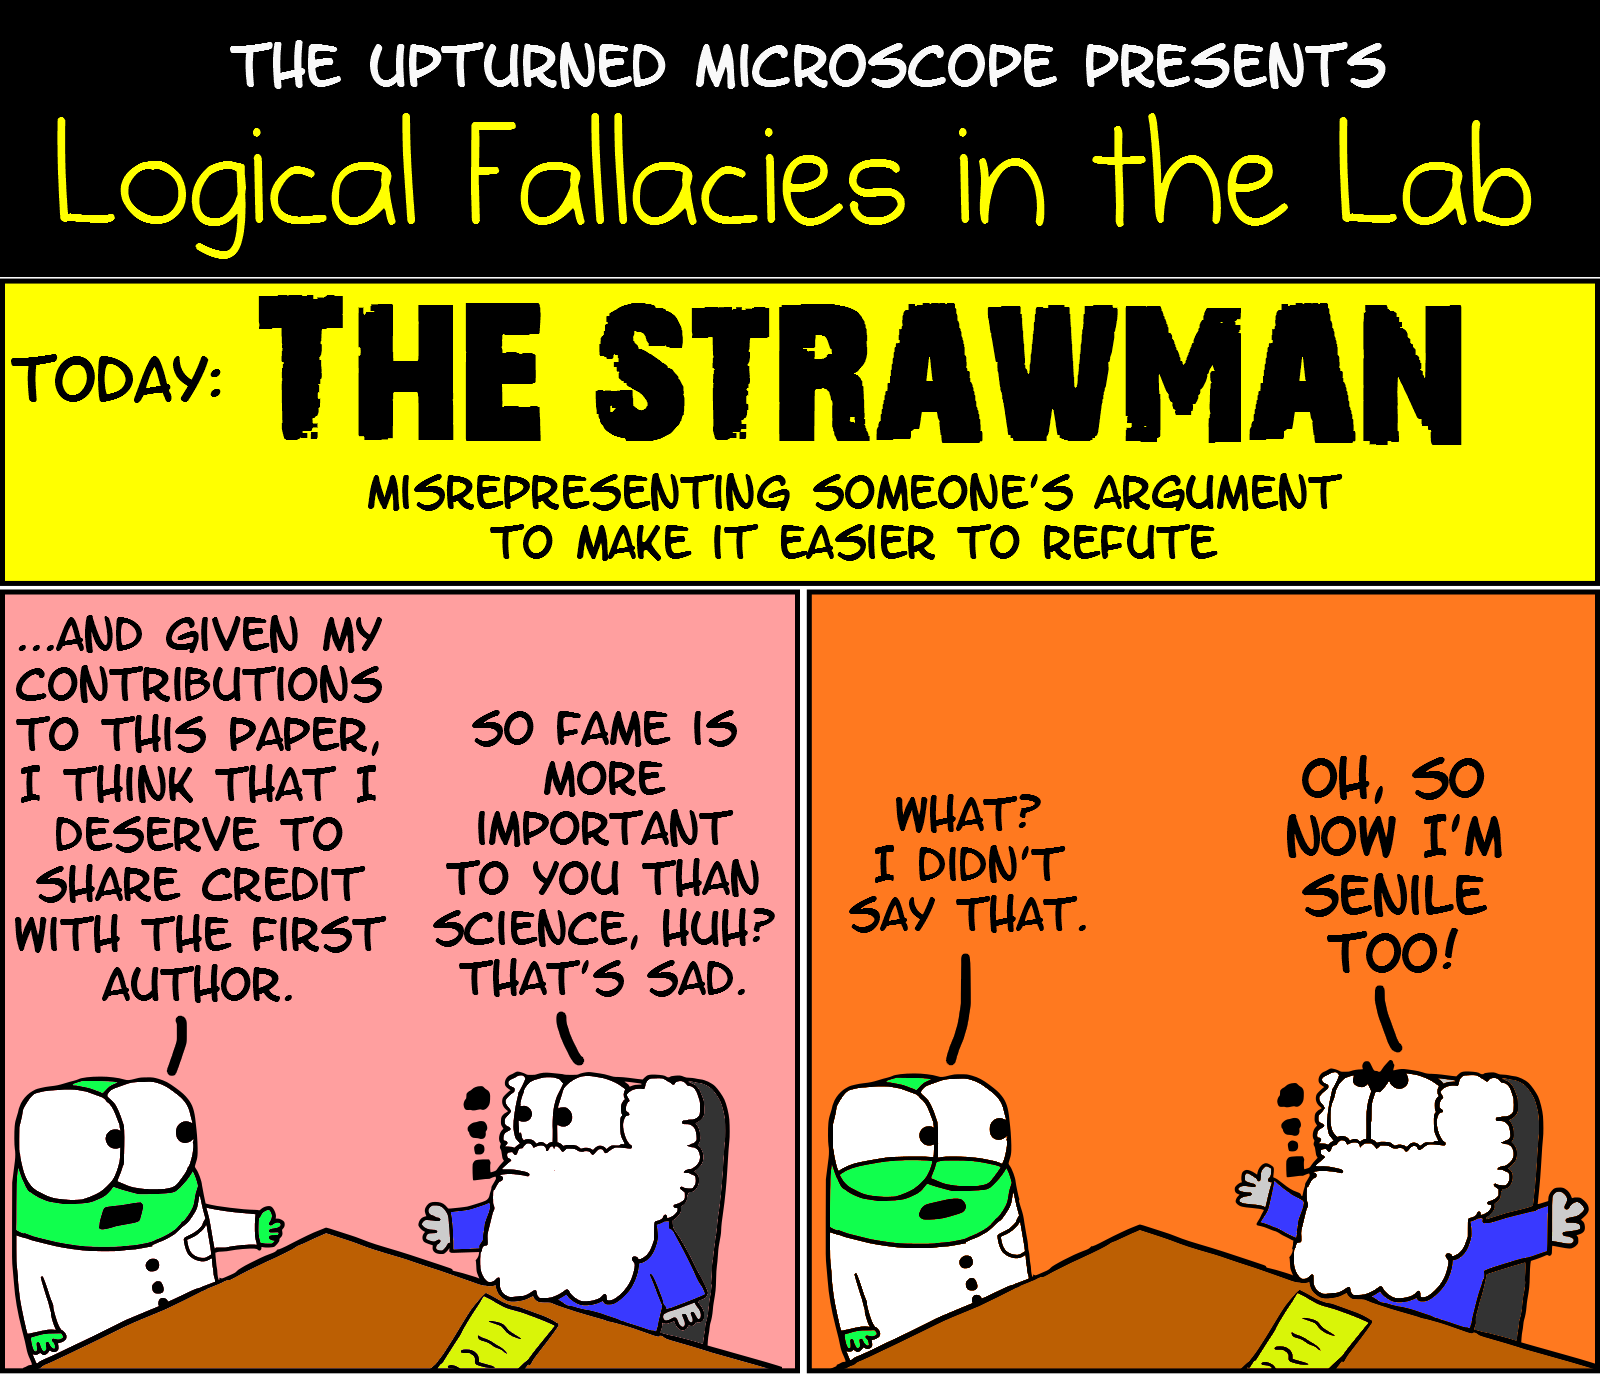 humour the upturned microscope page  logical fallacies strawman